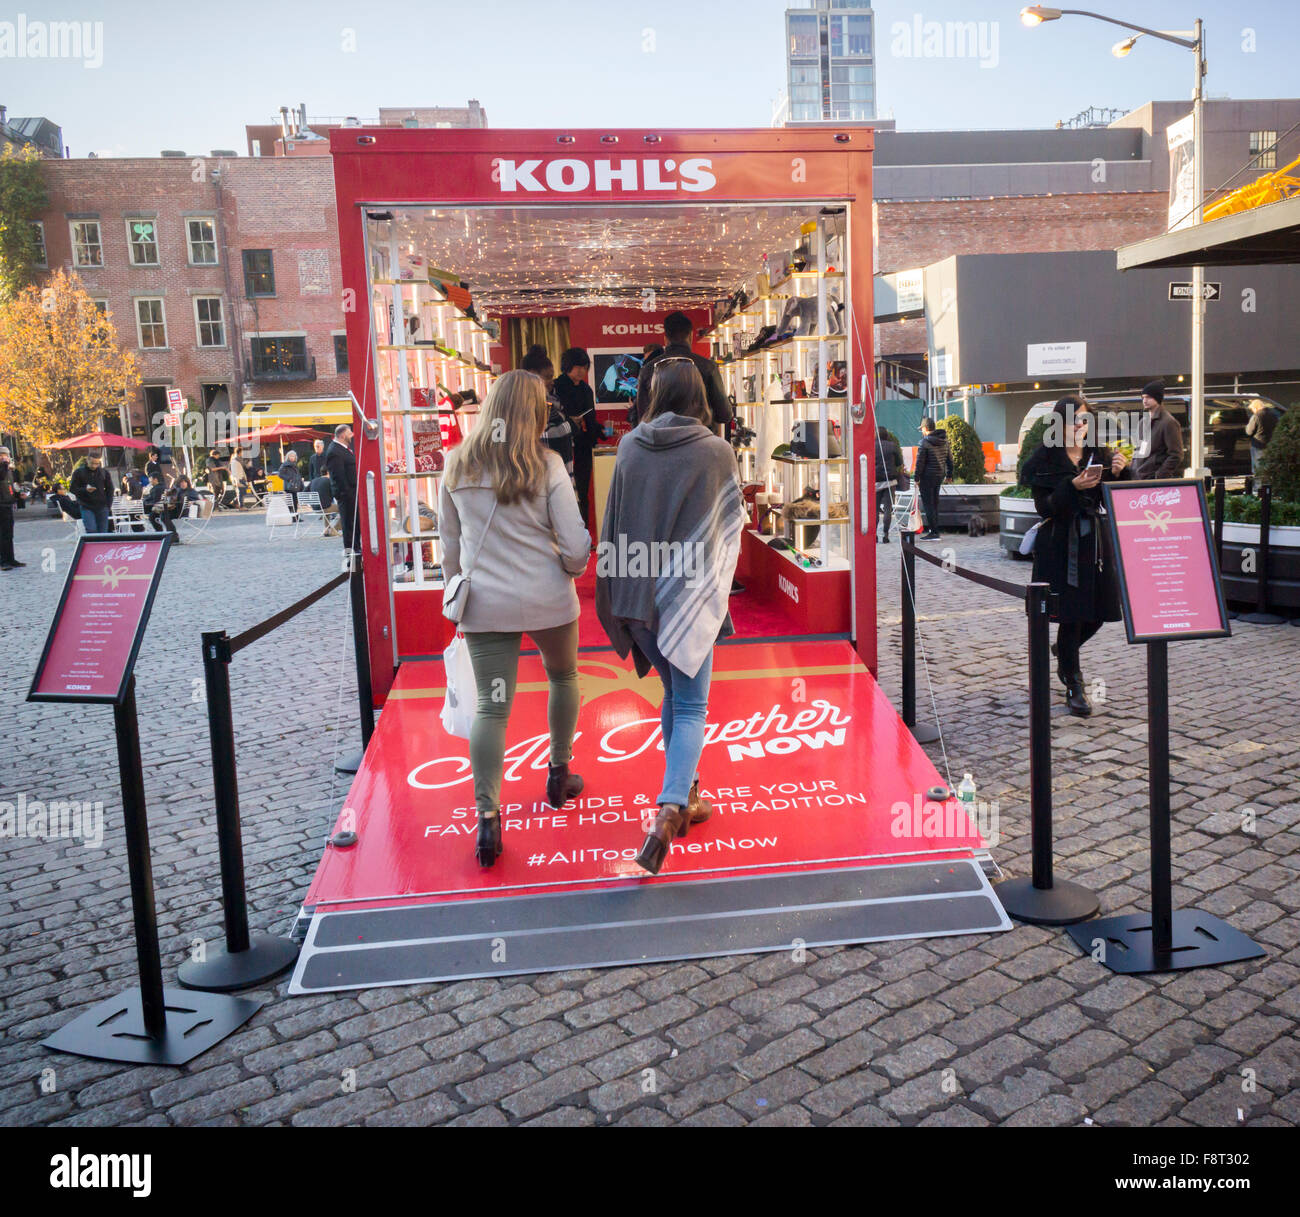 kohl s department store presented its pop up trailer promoting stock